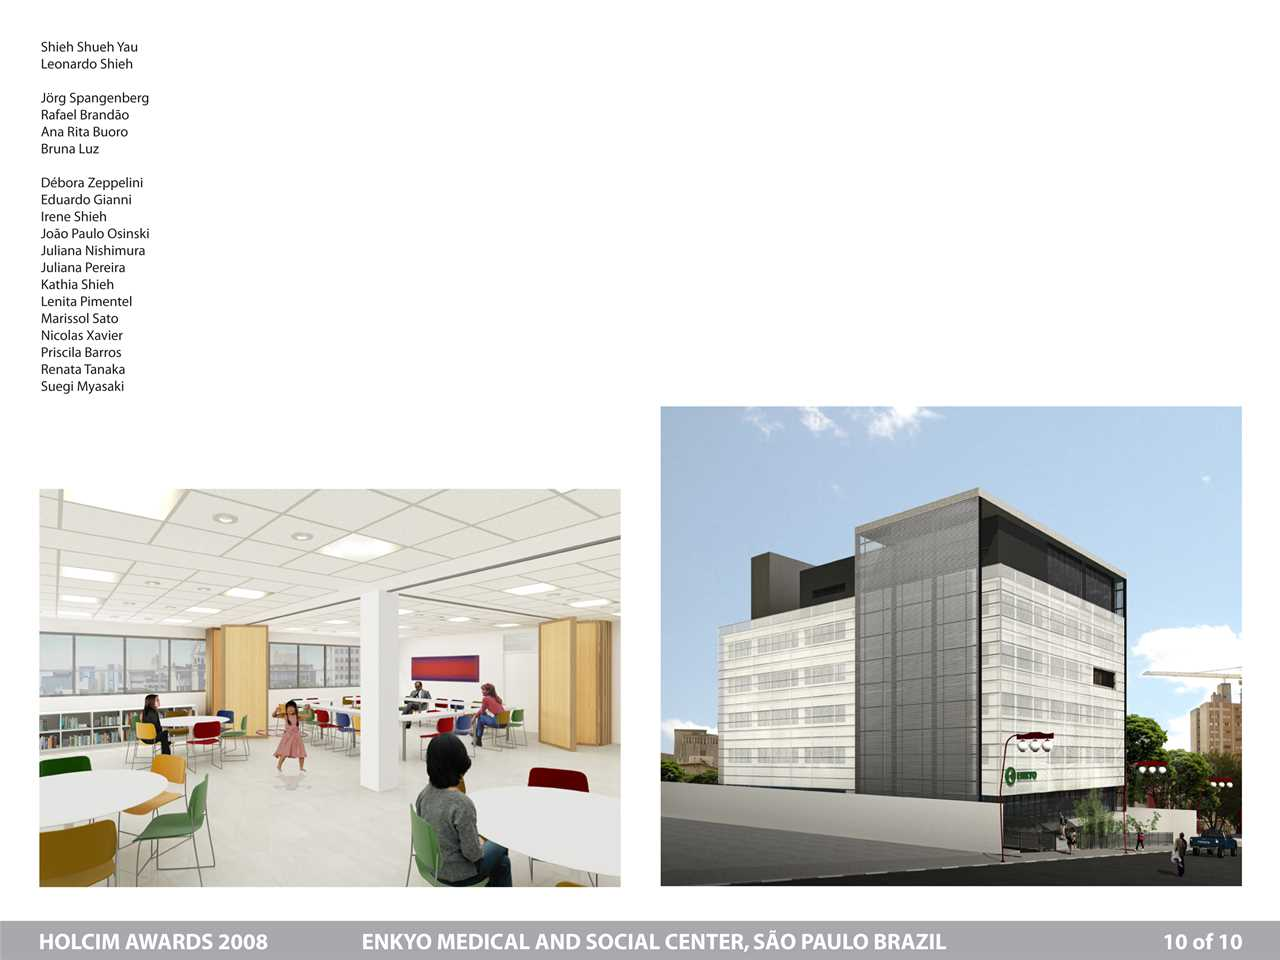 Project entry 2008 Latin America – Energy-efficient medical and social center, São Paulo, Brazil